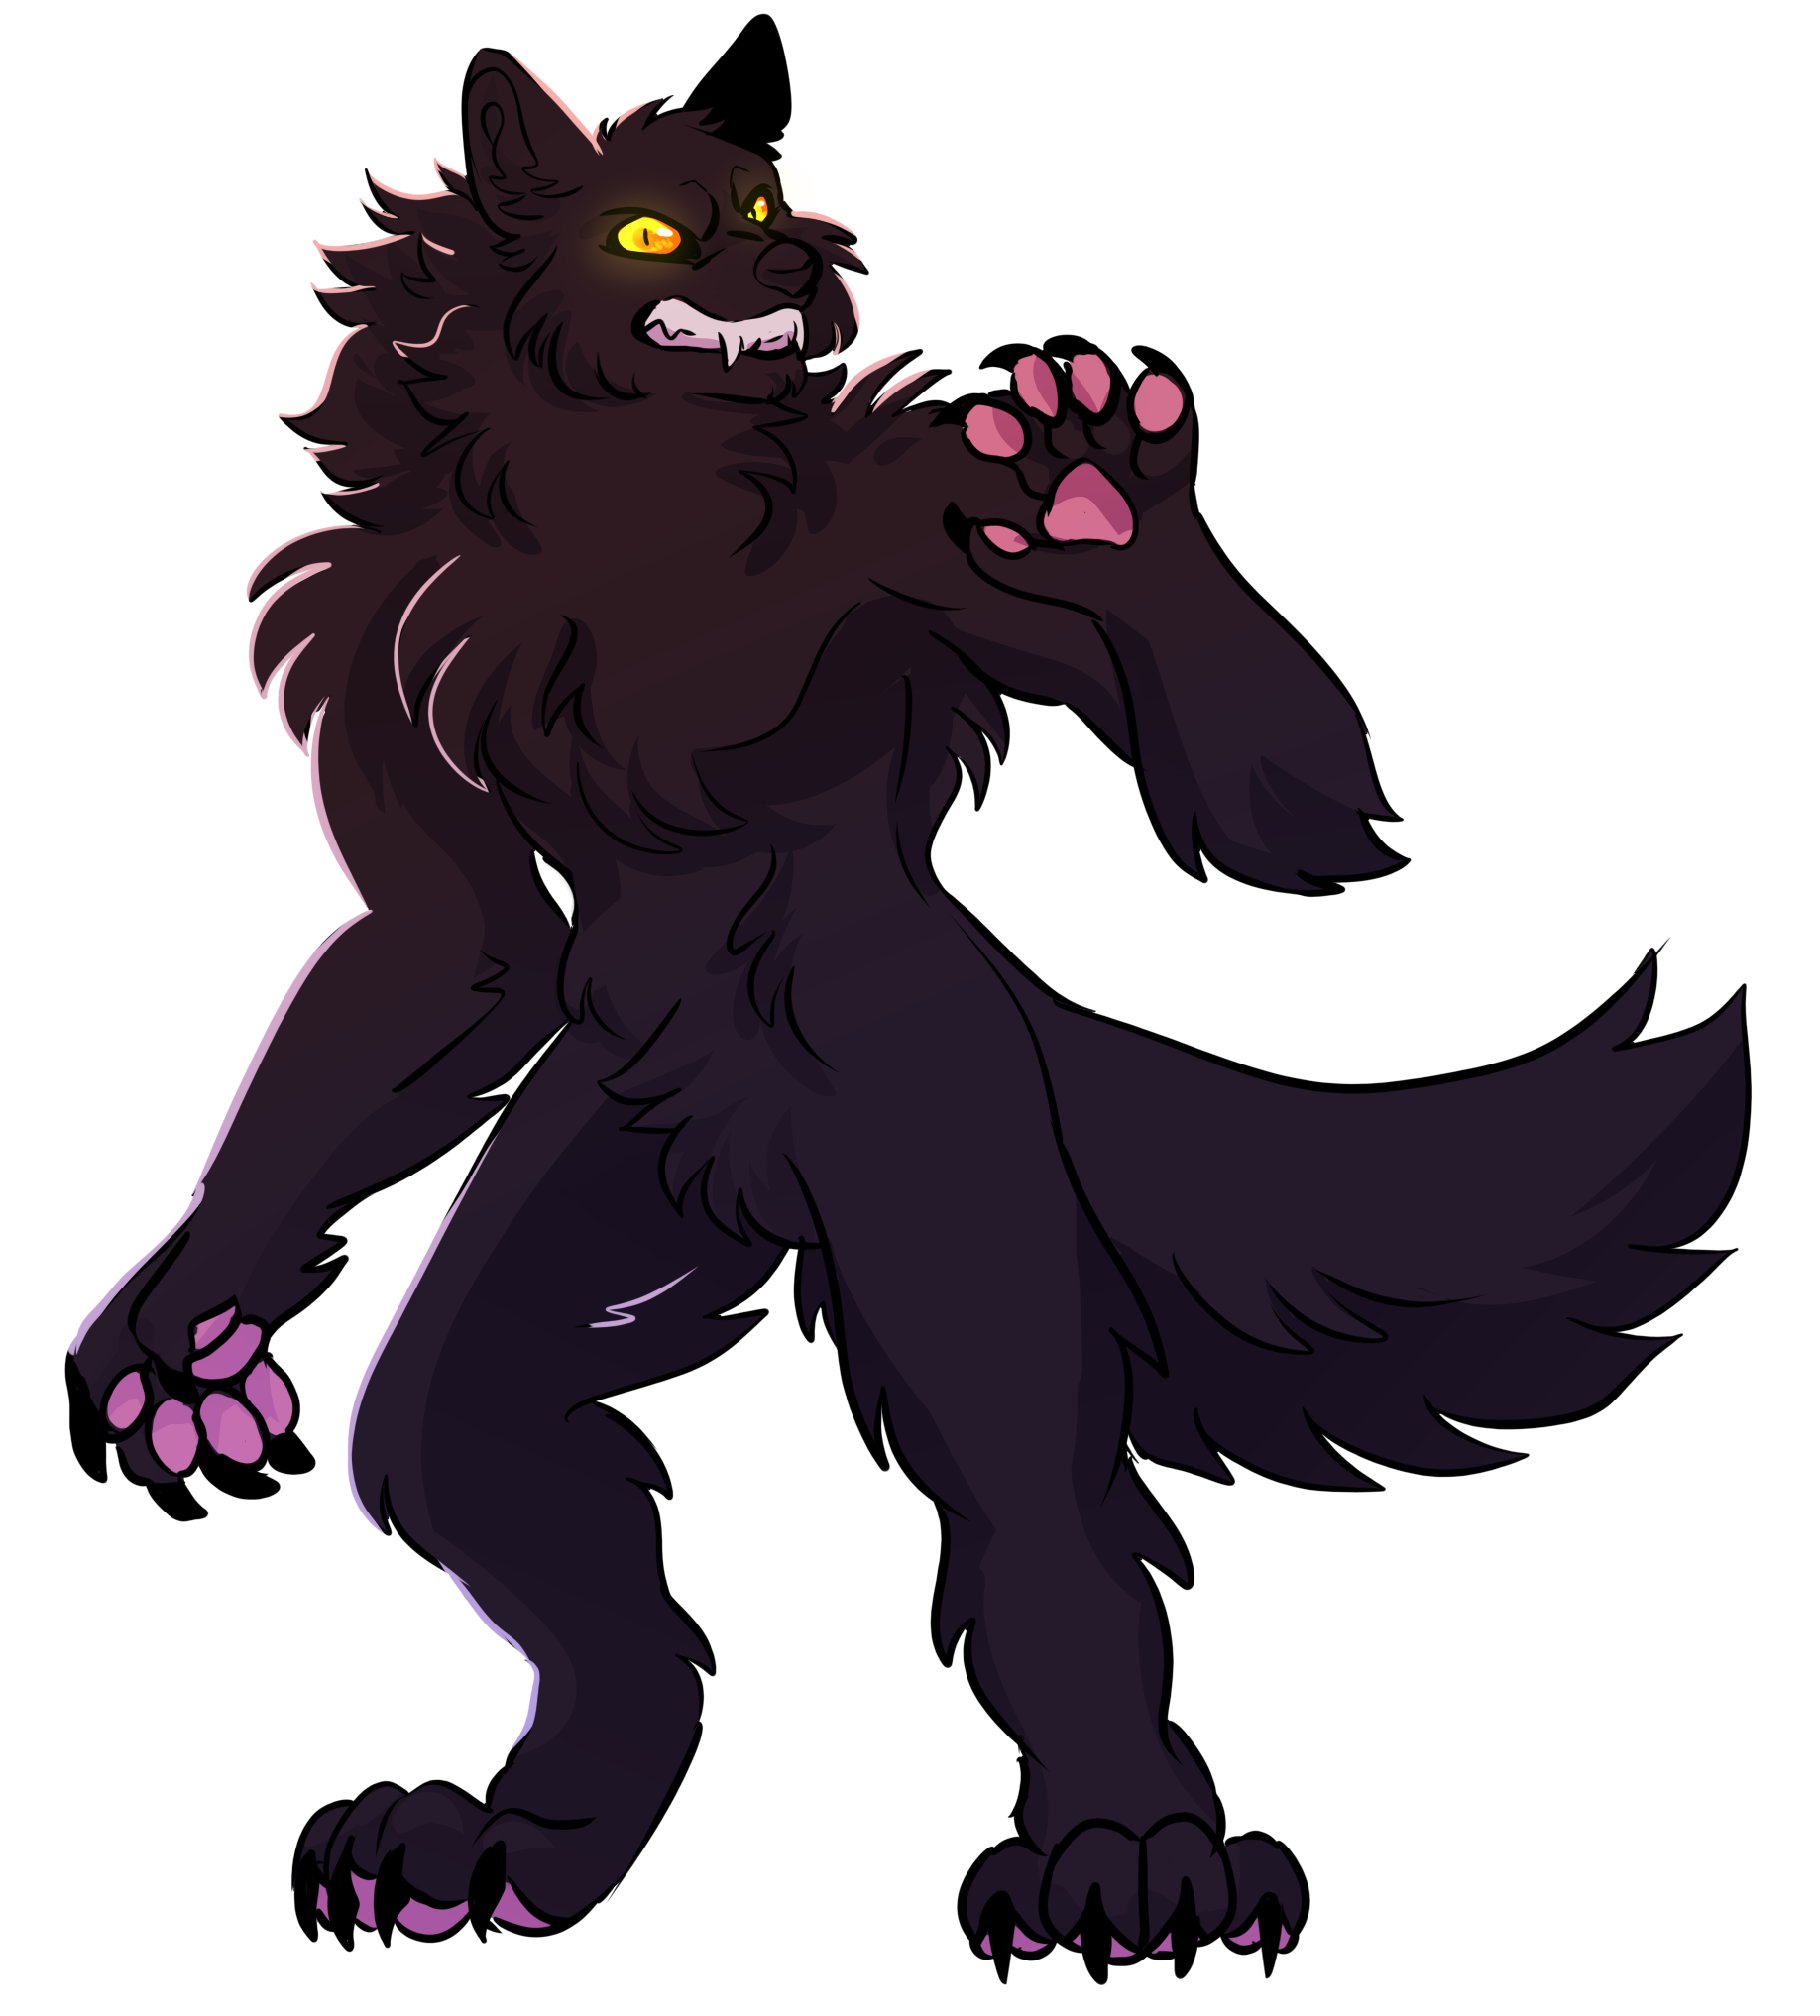 Art of my character by fangs-of-wolf on Art Fight!